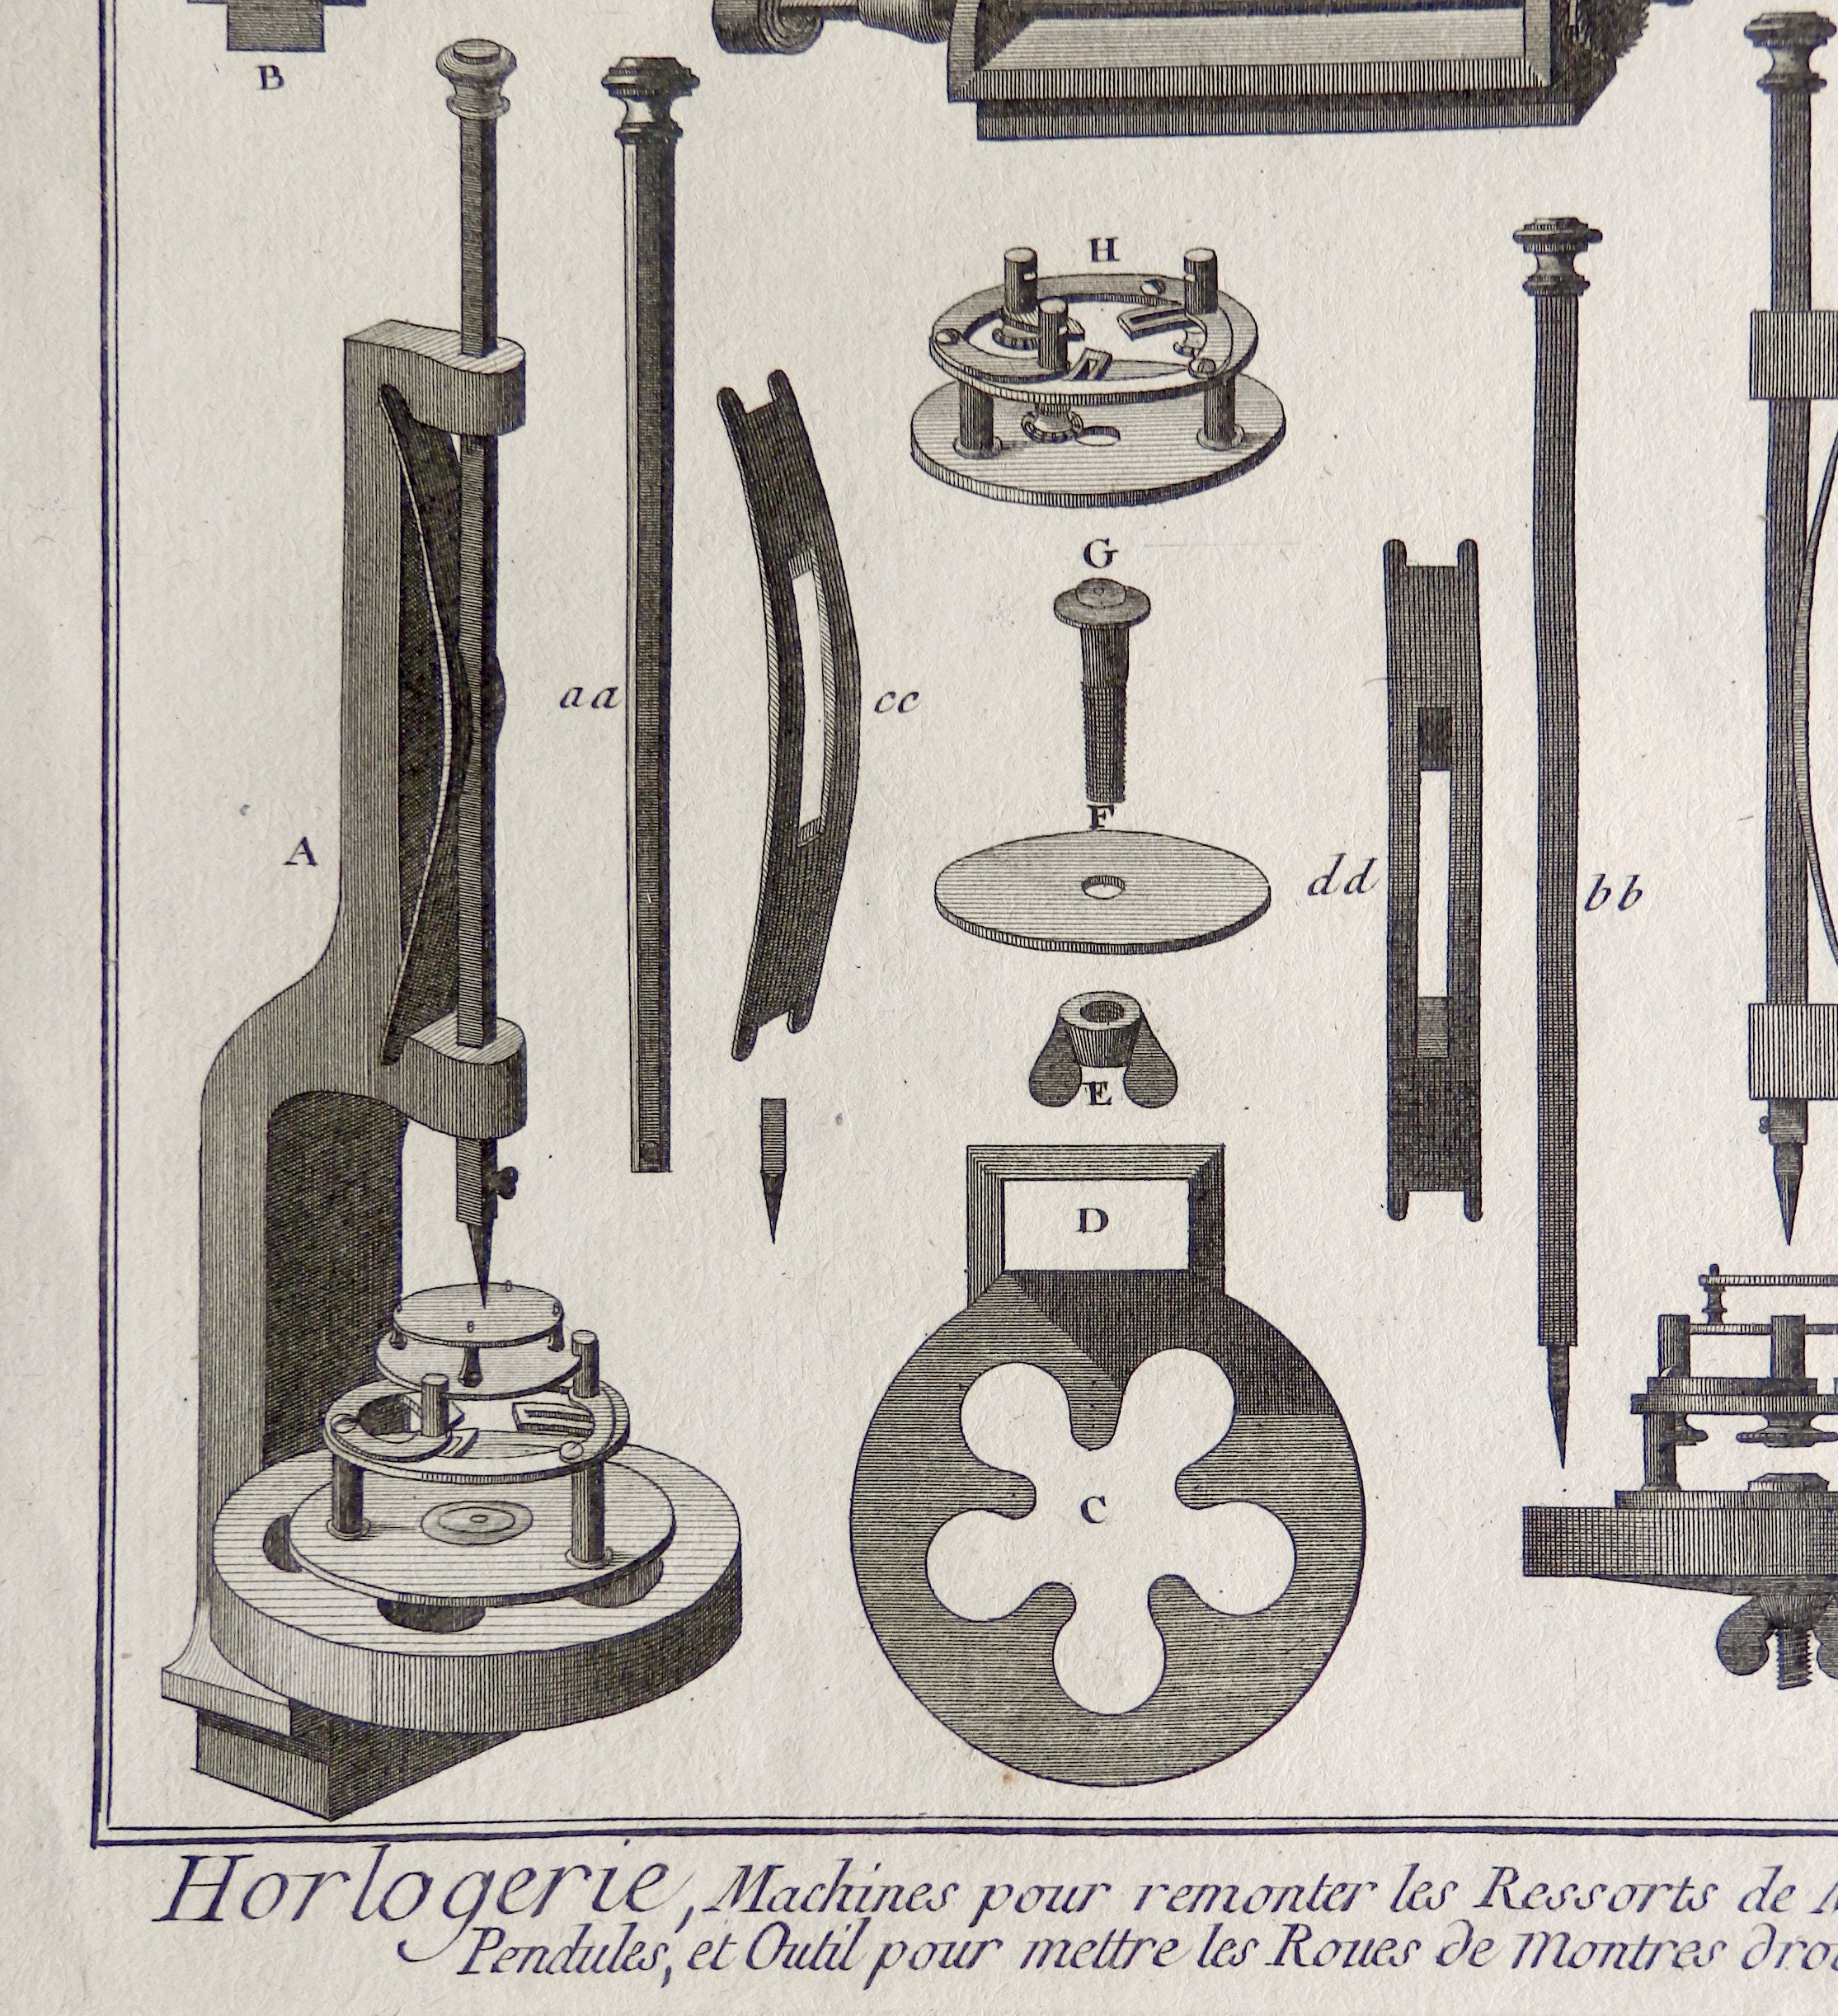 1784.Antique print.Engraving.Intaglio.12,1x9 inches or 31x23 cm.PRINTER,tools Panckoucke.230 year old.Copper engraving.